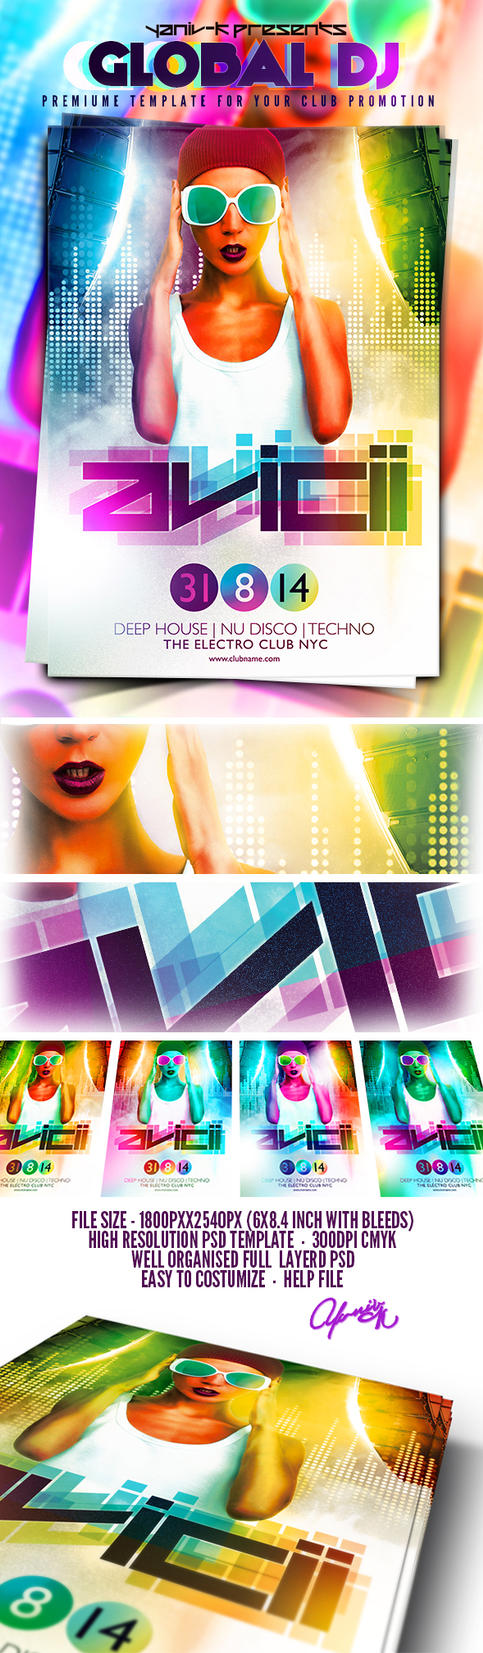 Global Dj PSD Flyer Template by yAniv-k